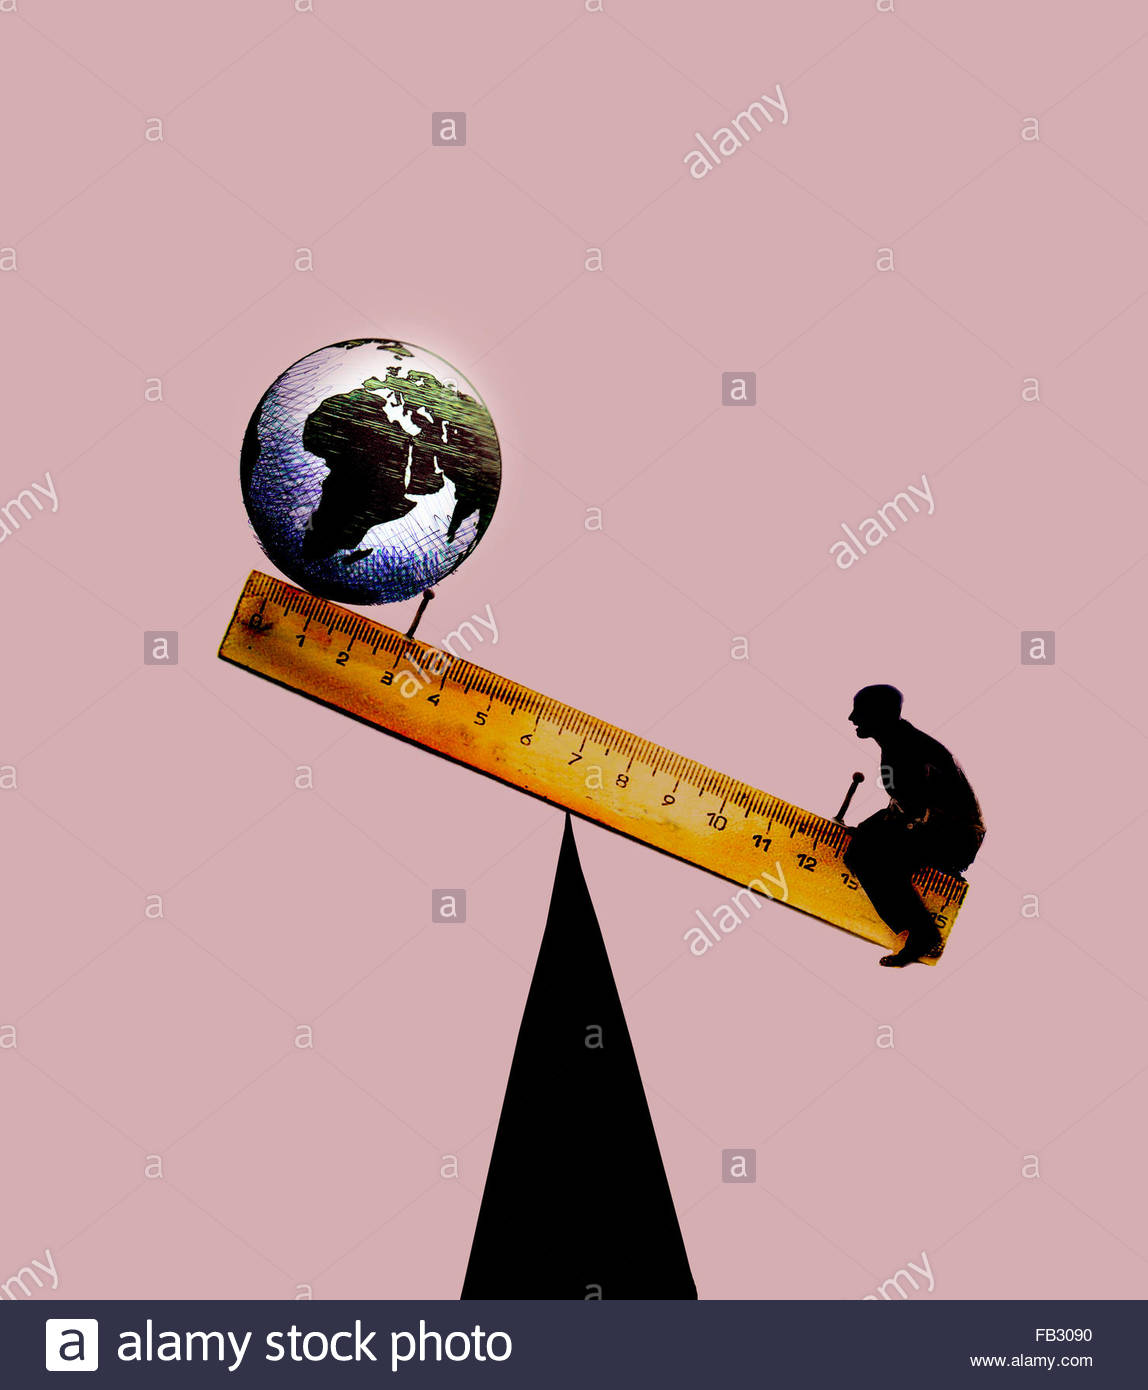 Globe balancing on ruler seesaw with man on opposite end - Stock Image